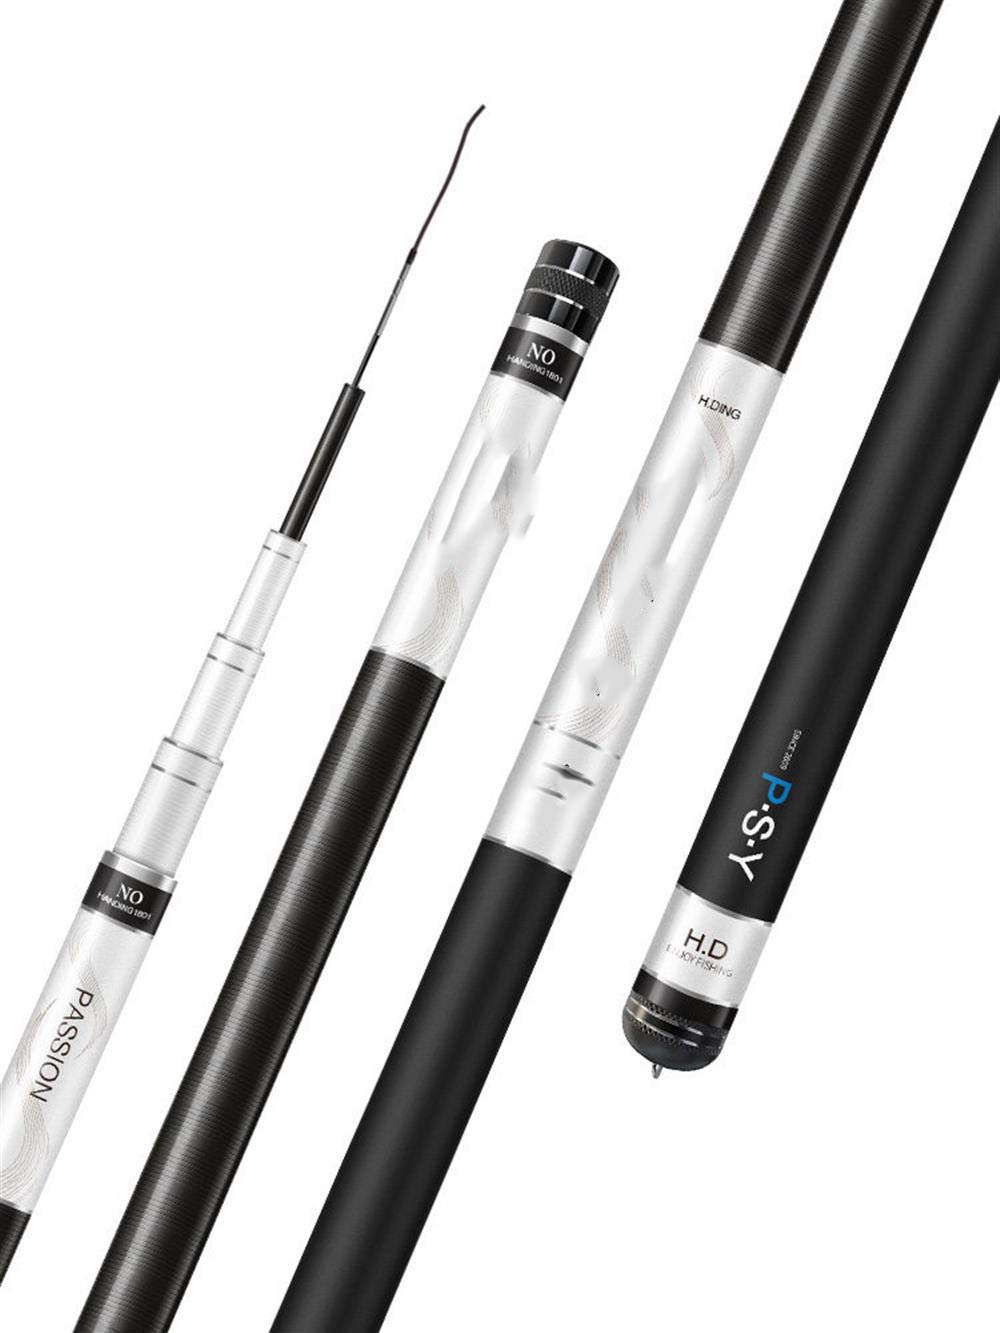 2.7m Fishing Rod, Light and Portable Telescopic Fishing Rod and Reel Combination